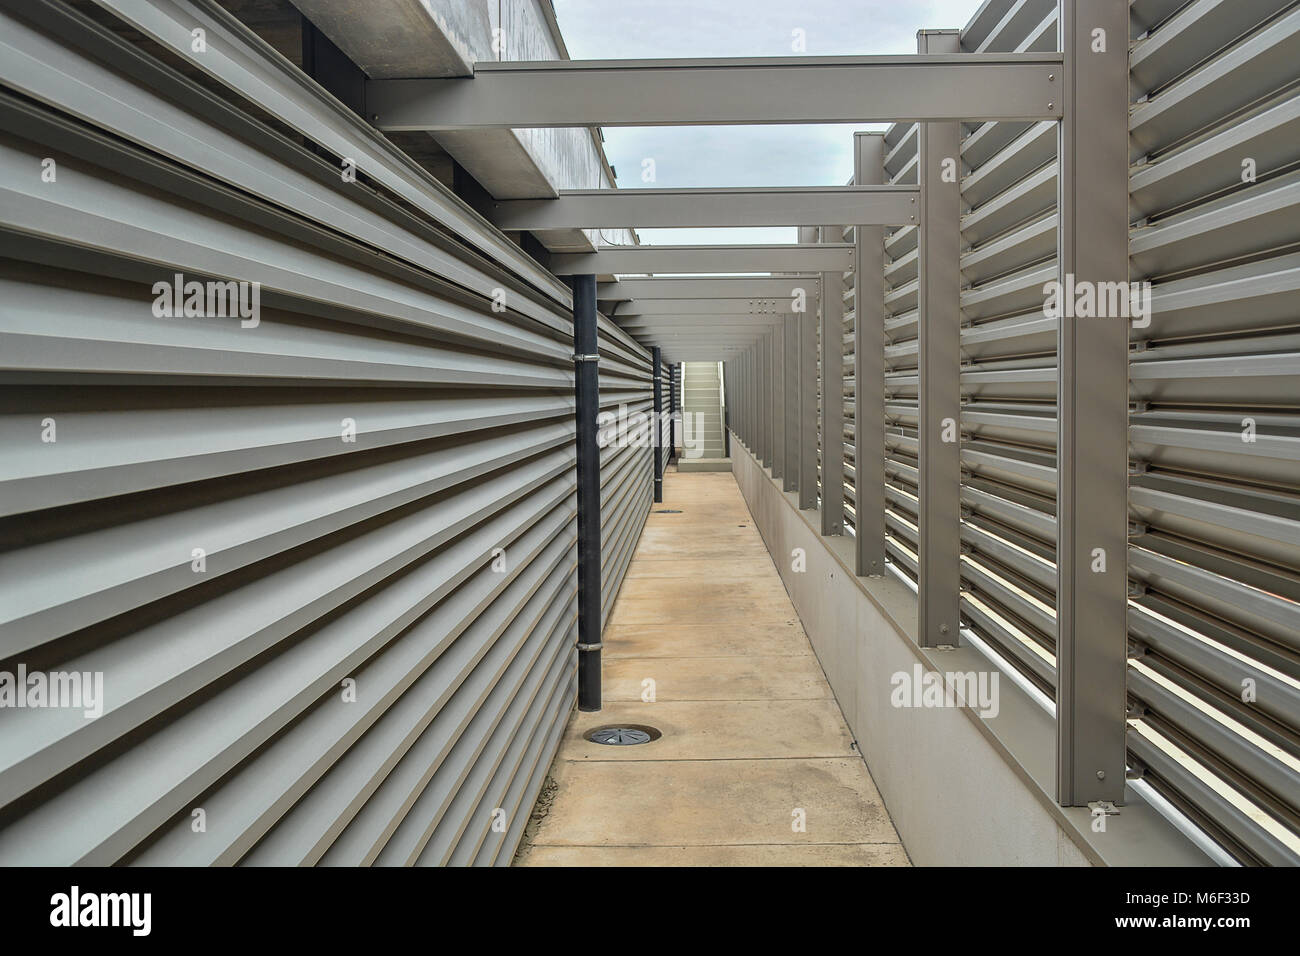 hall on the top of the building, metallic structure - Stock Image